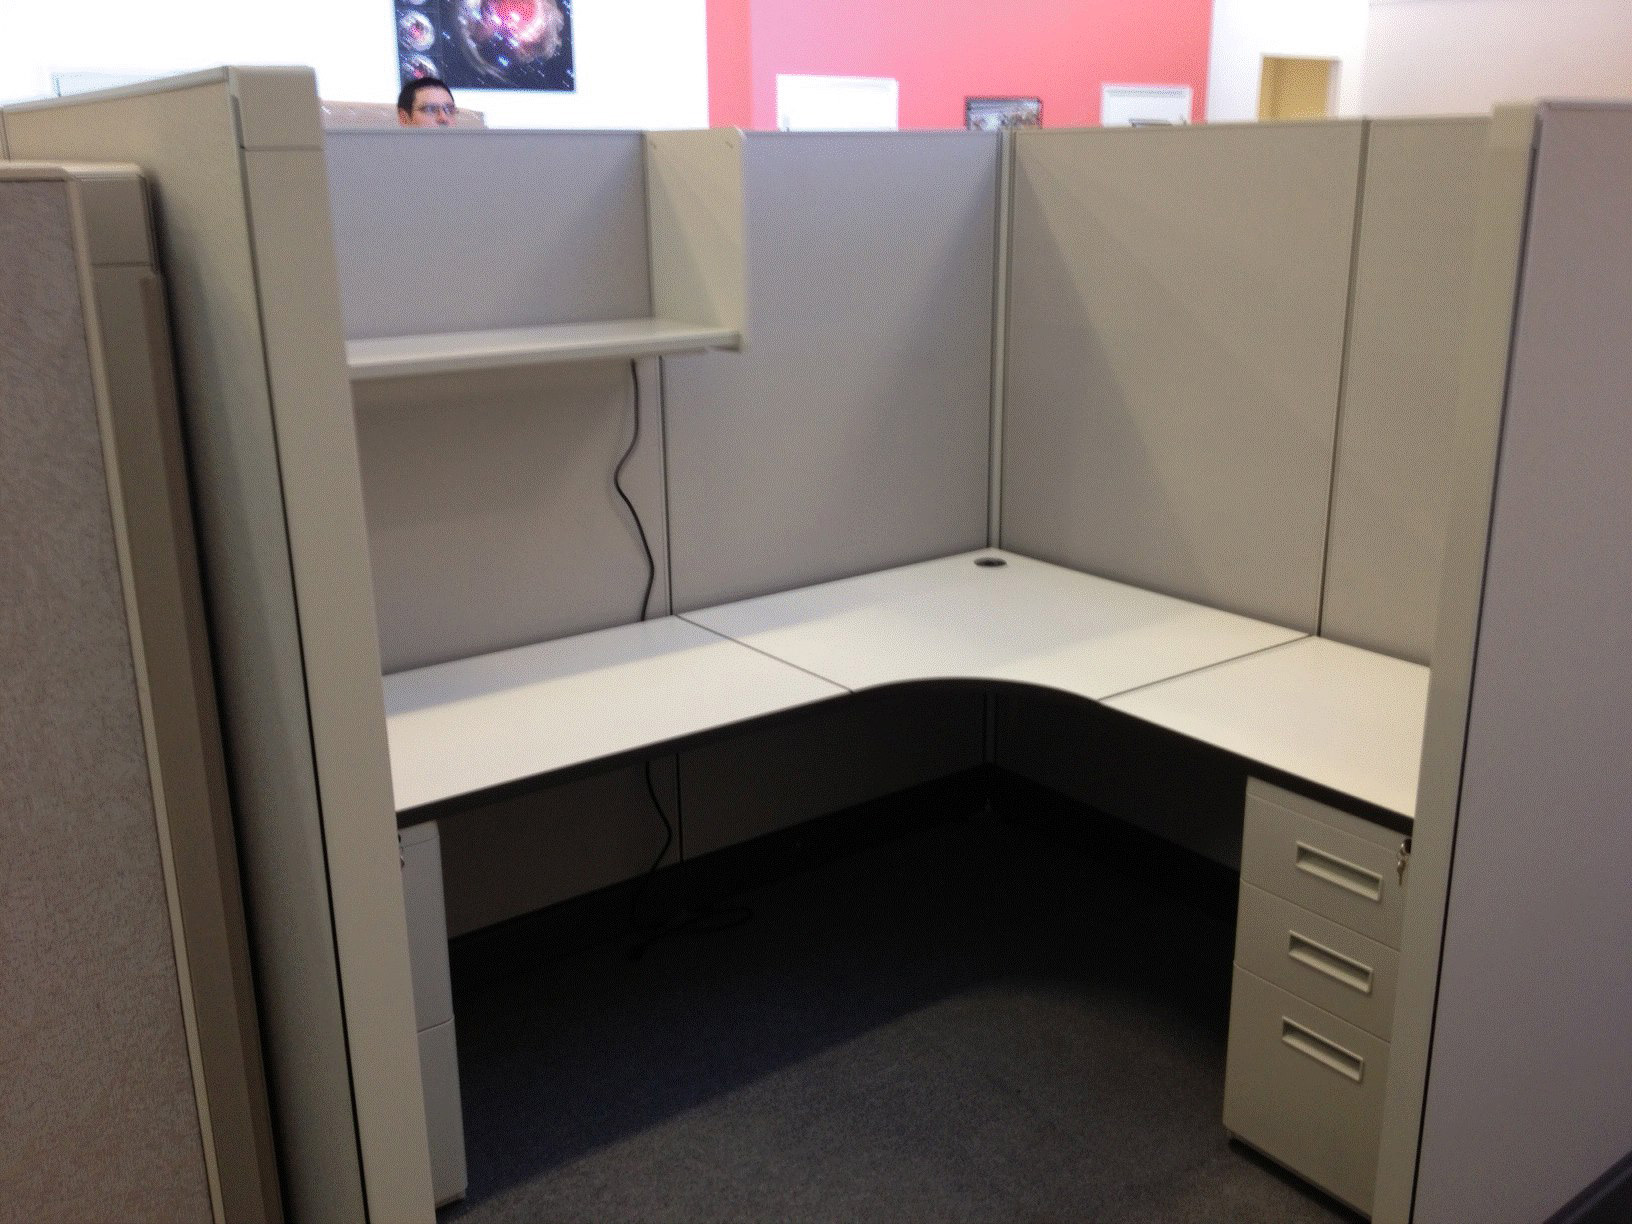 cubicle-shelves-manasota-office-supplies-llc.jpg